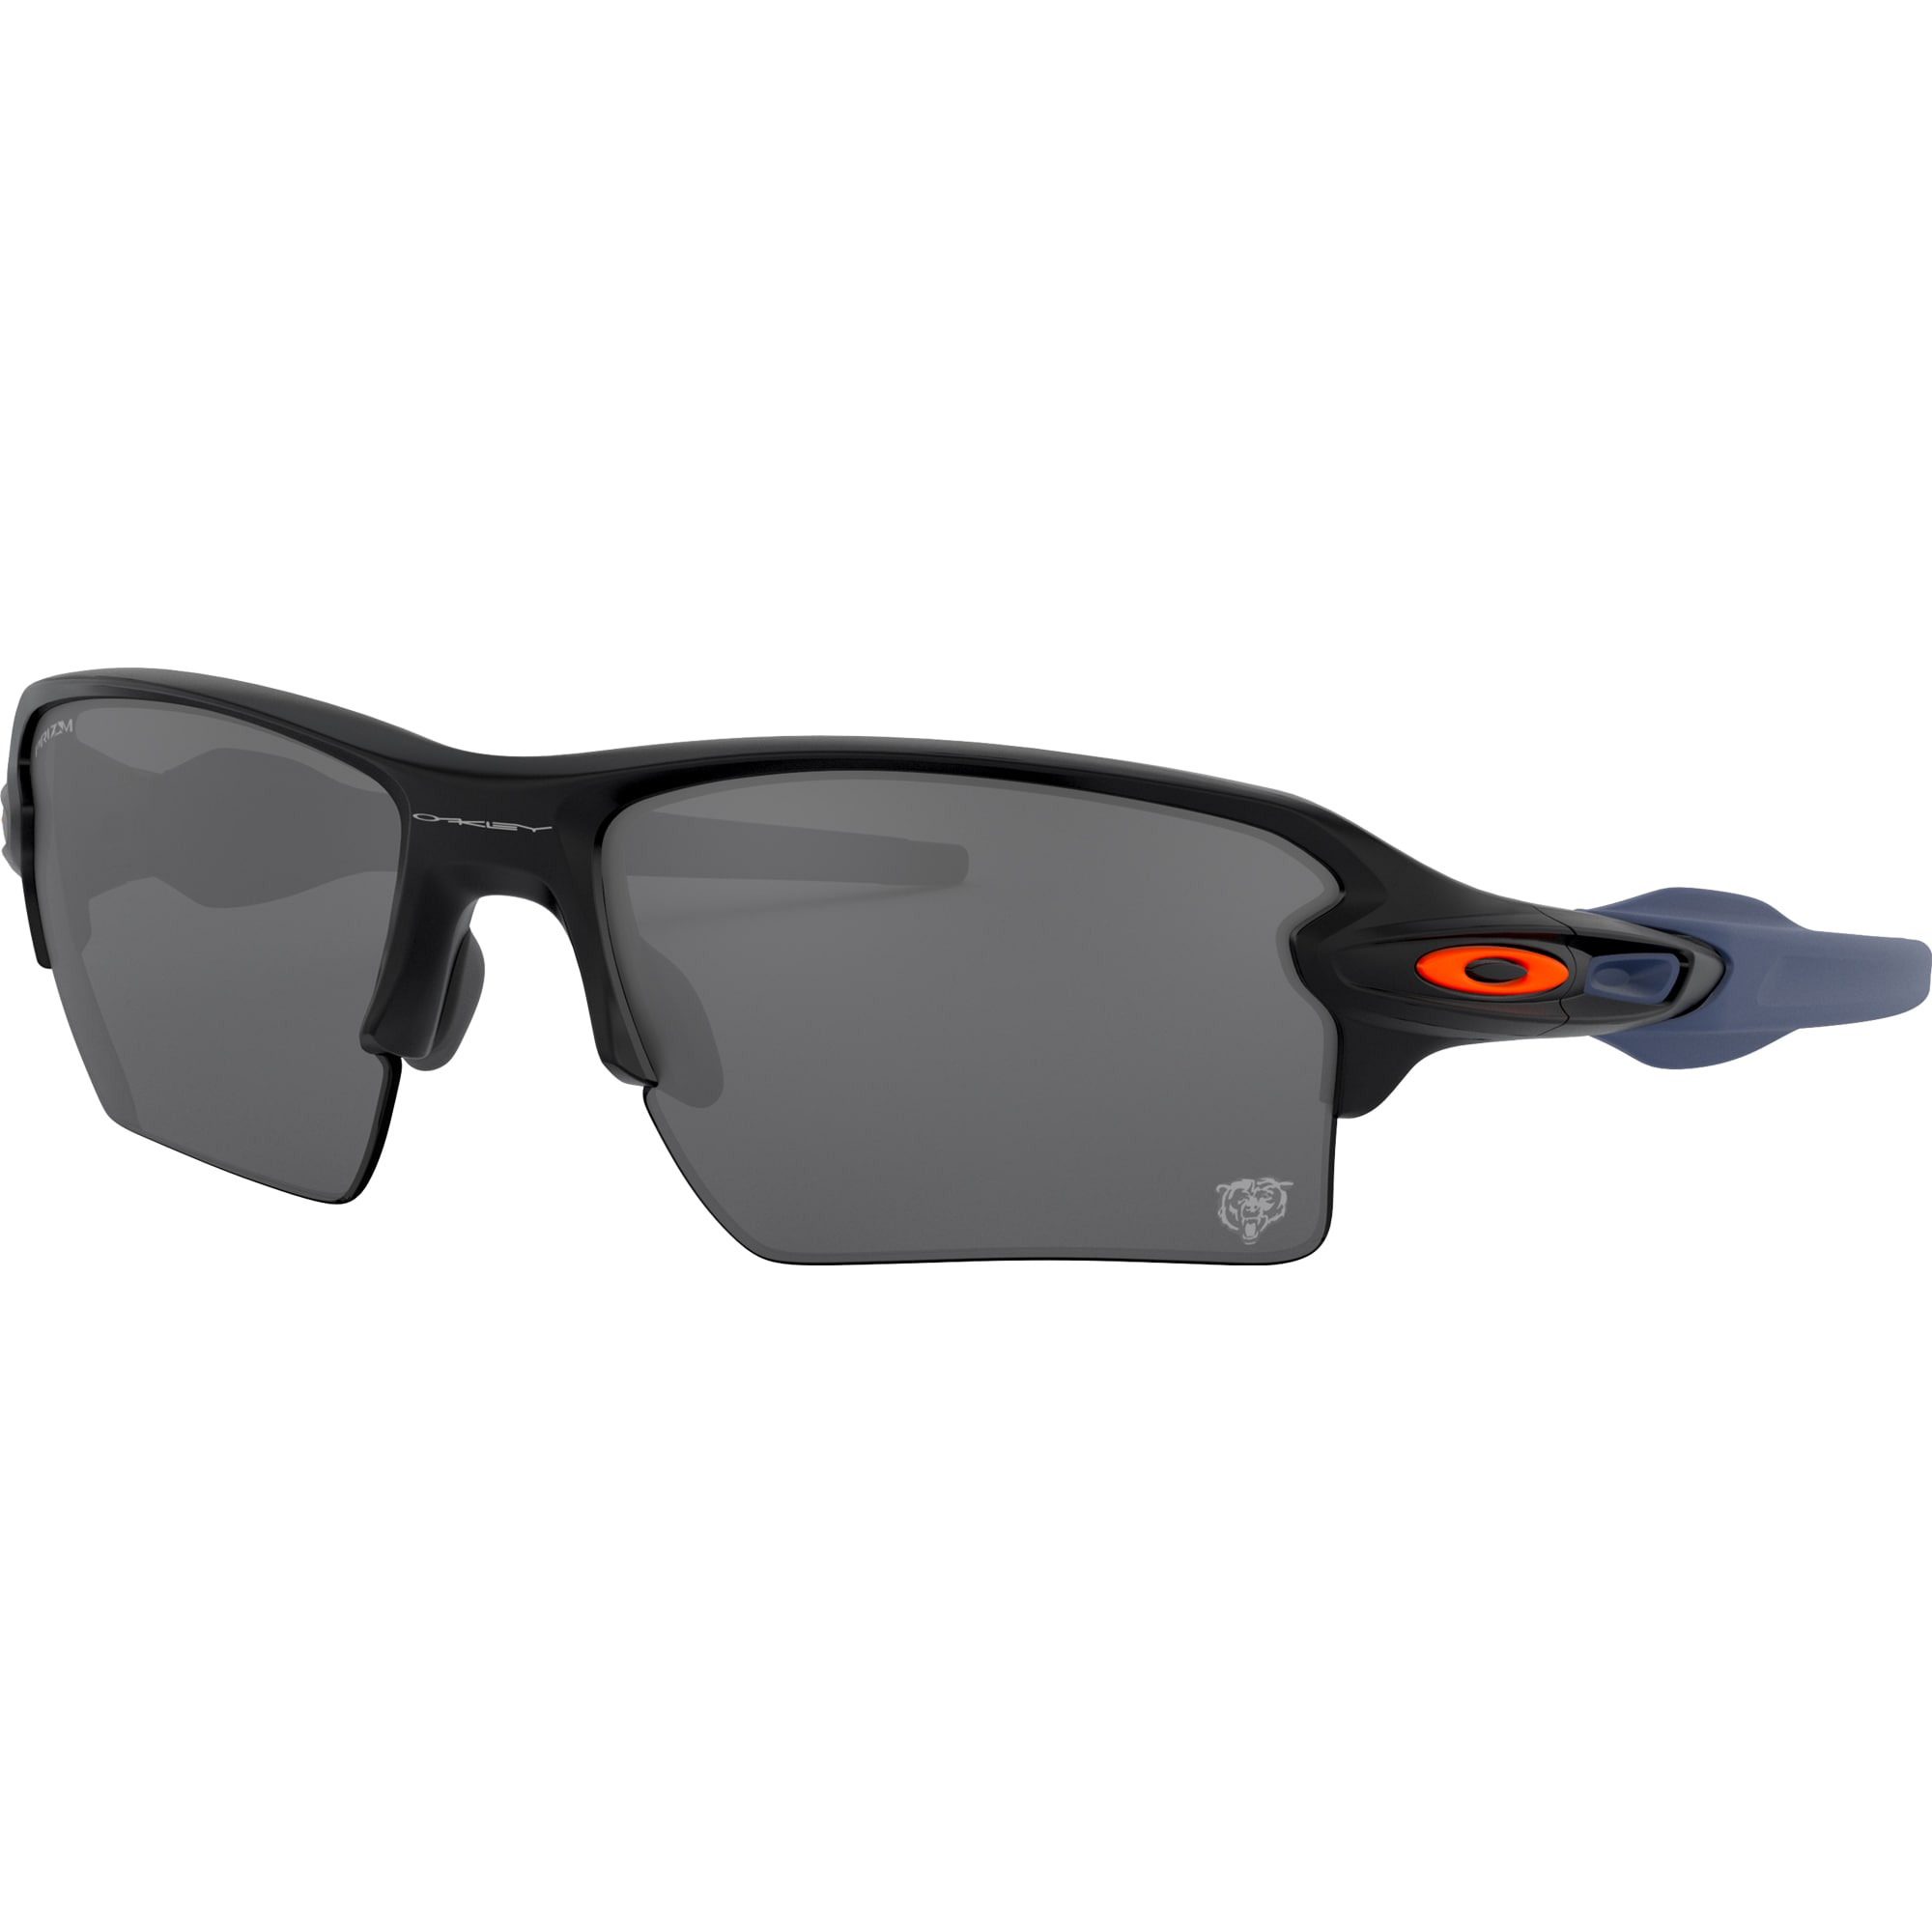 Chicago Bears Oakley Flak 2.0 XL Sunglasses